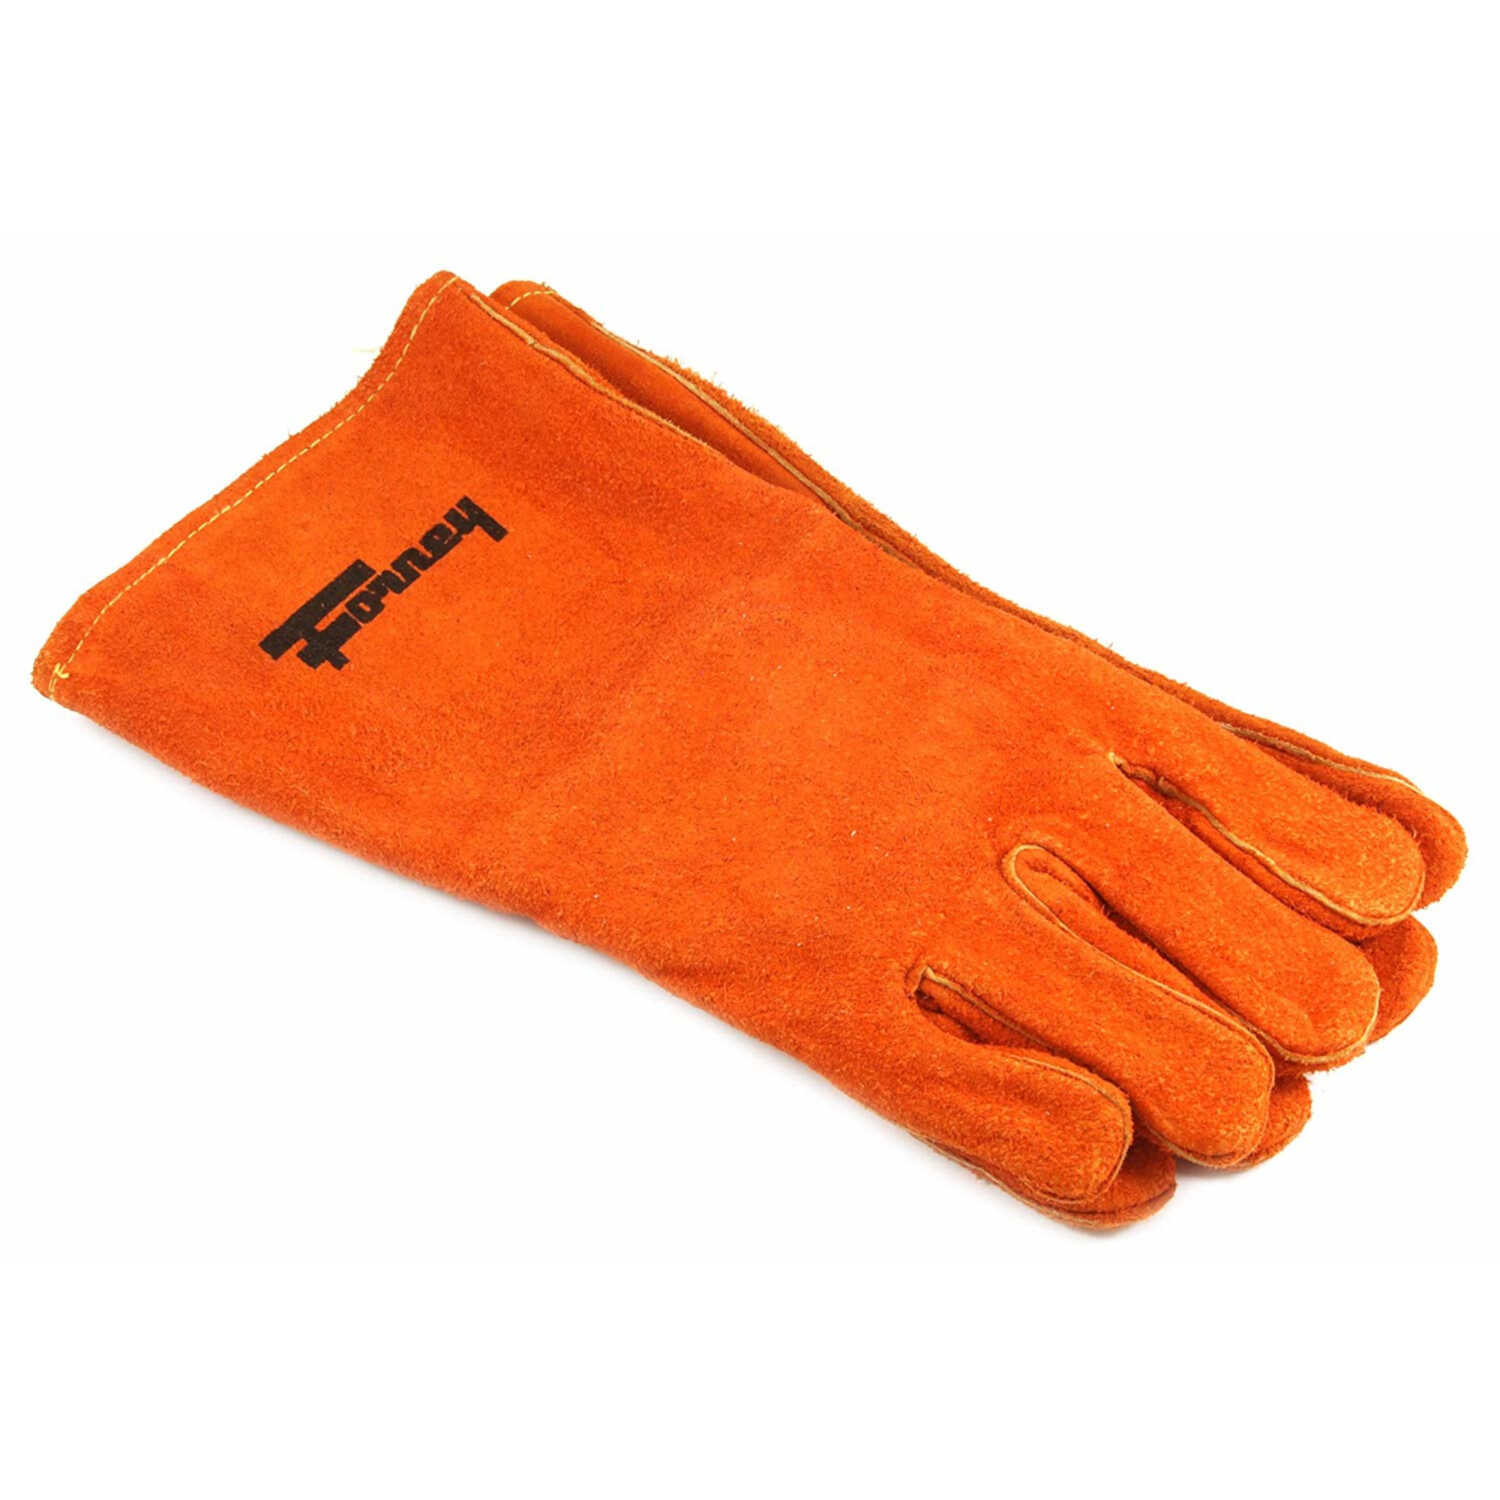 Forney  14 in. Cowhide  Welding Gloves  Brown  L  1 pk